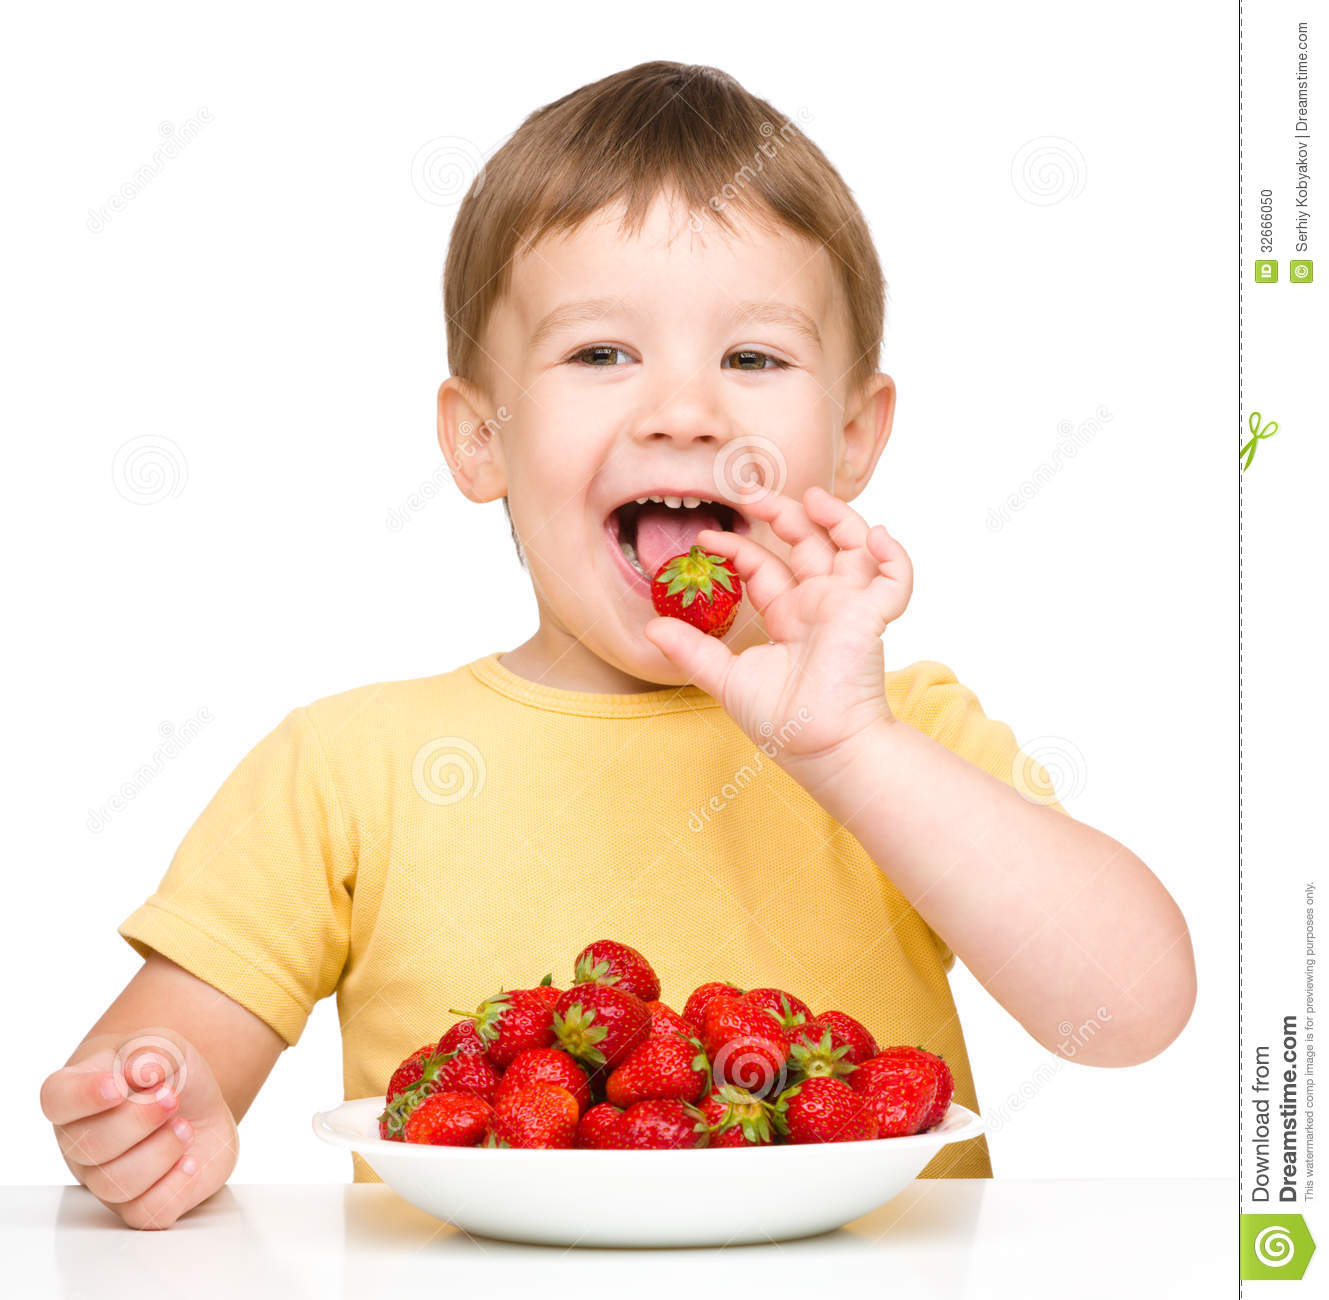 Happy Little Boy With Strawberries Stock Photo - Image: 32666050